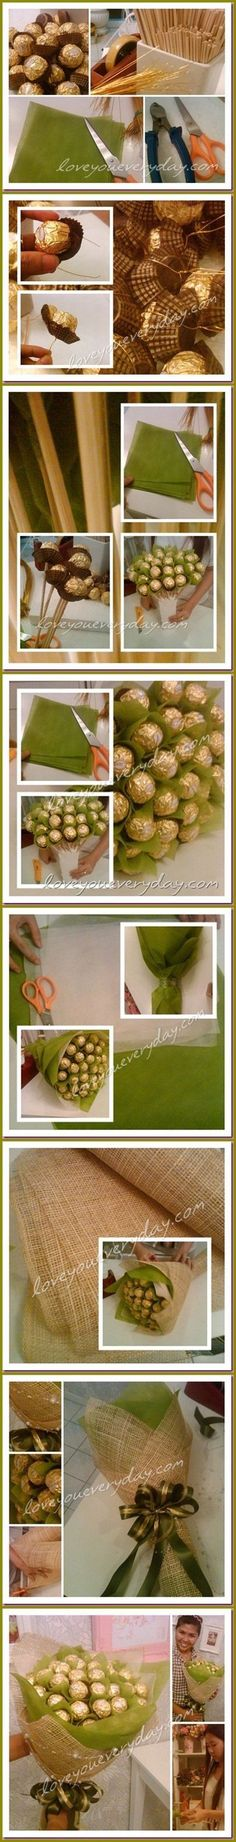 Discover thousands of images about DIY - Chocolate Flower Bouquet - Ramo de Ferrero Rocher Diy Bouquet, Candy Bouquet, Boquet, Homemade Gifts, Diy Gifts, Ferrero Rocher Bouquet, Chocolate Flowers Bouquet, Sweet Trees, Candy Gifts